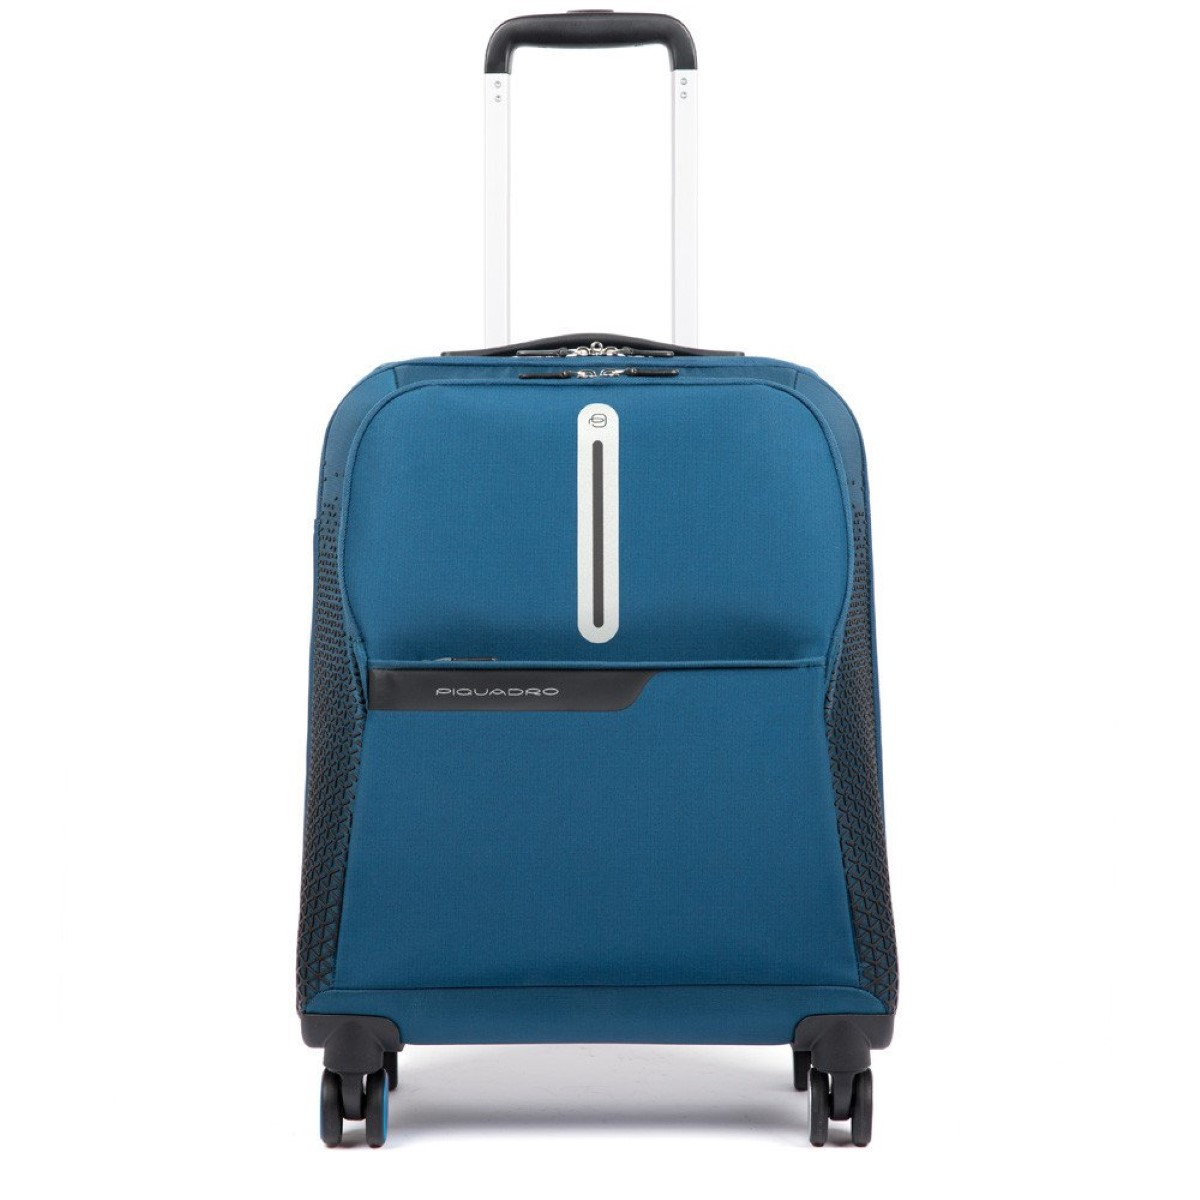 TROLLEY CABINA ULTRA SLIM A 4 RUOTE